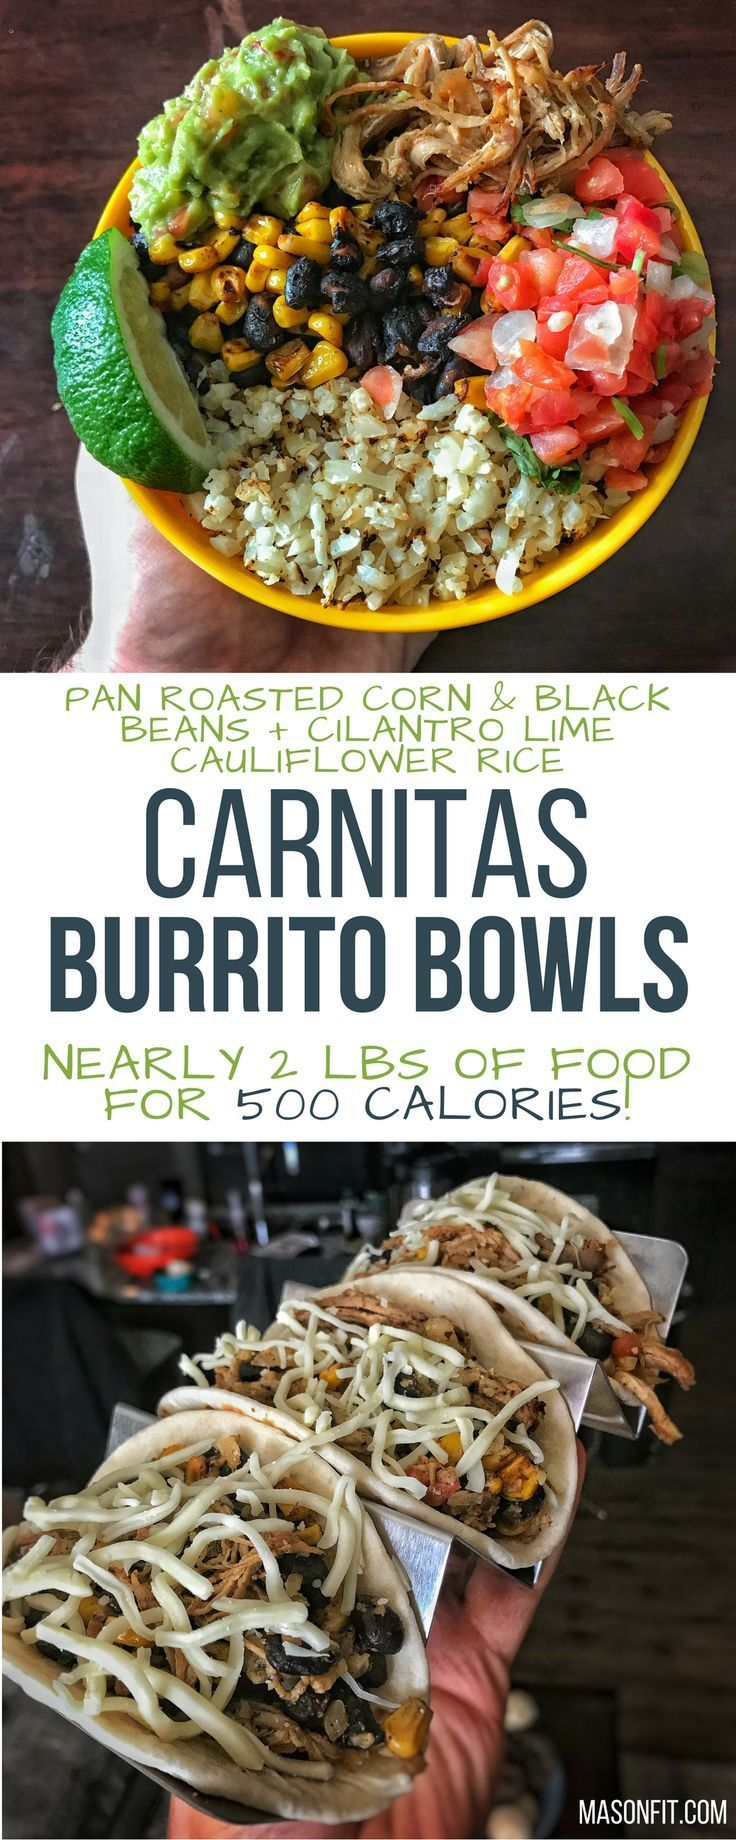 If you struggle with hunger or a big appetite when eating a healthy diet, you'll love this recipe. Weighing in at nearly two pounds, the cilantro lime cauliflower rice and pan roasted corn and beans provide a ton of delicious volume. While the crispy carn